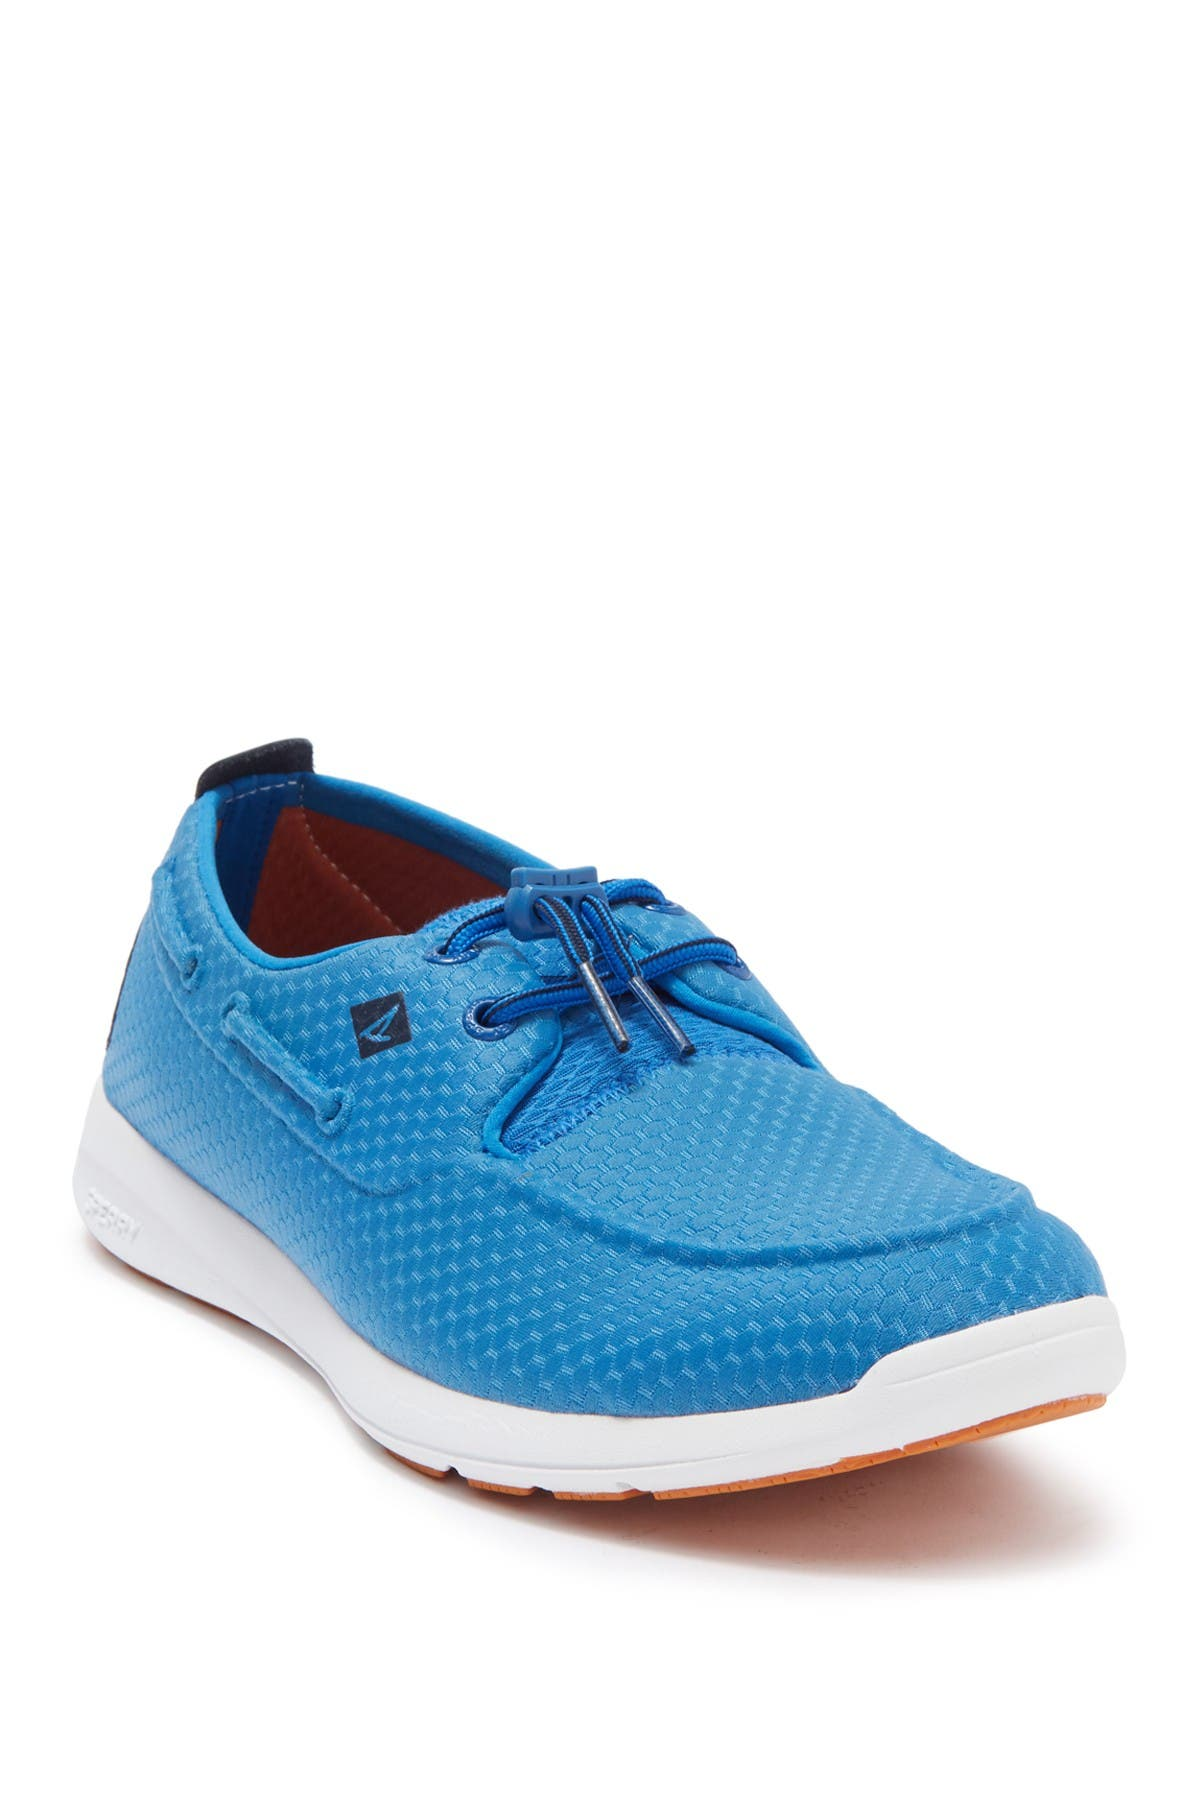 Image of Sperry Sojourn Mesh Shoe